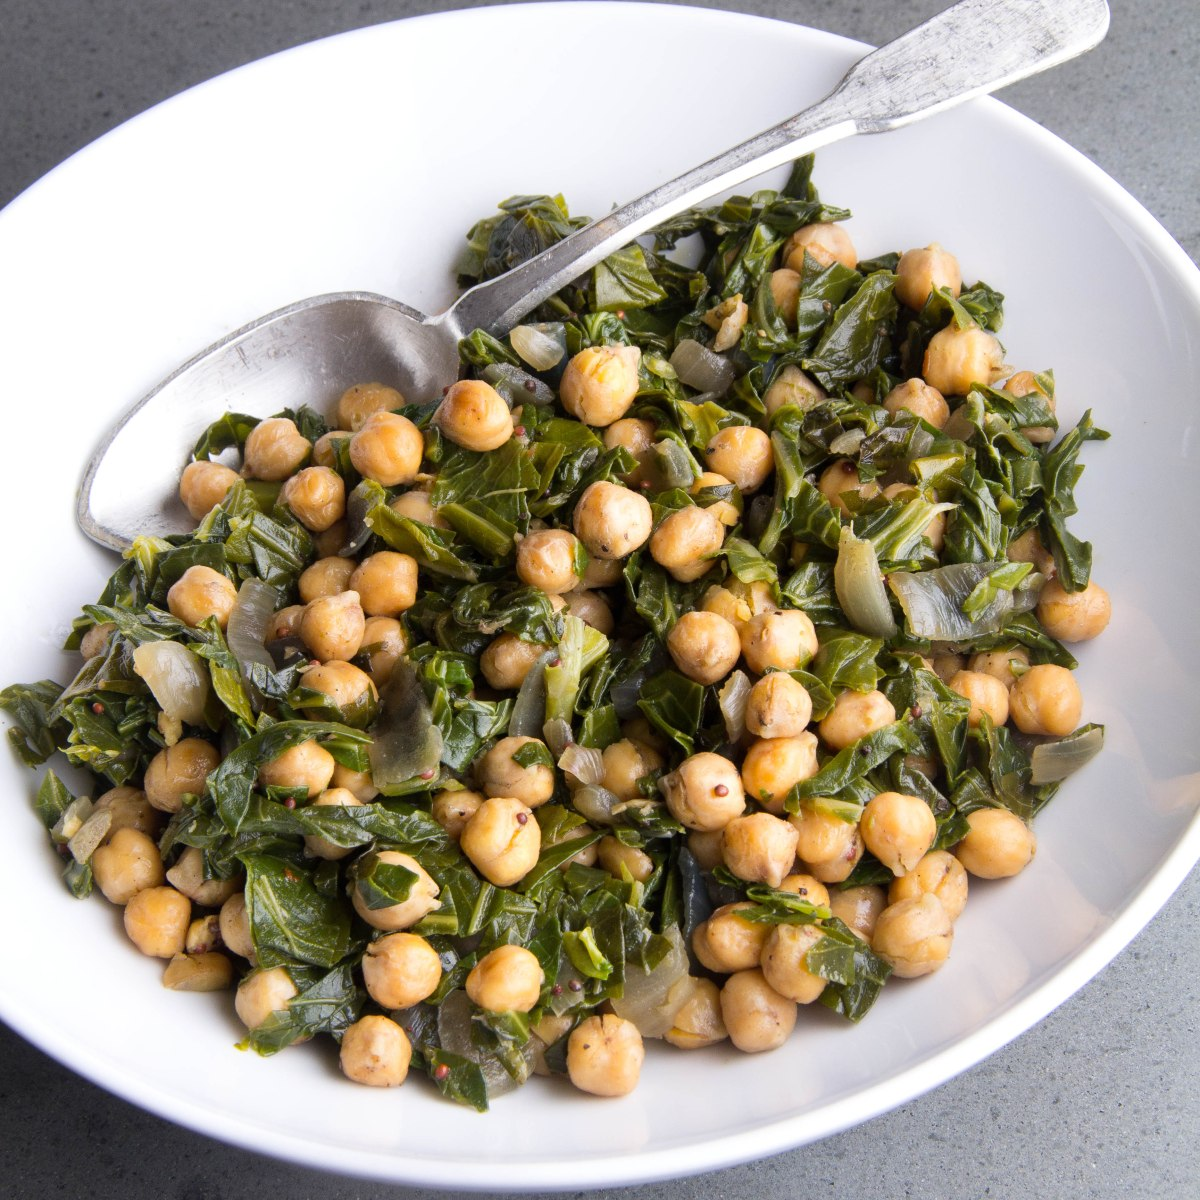 Spice-Roasted Chick Peas with Collard Greens